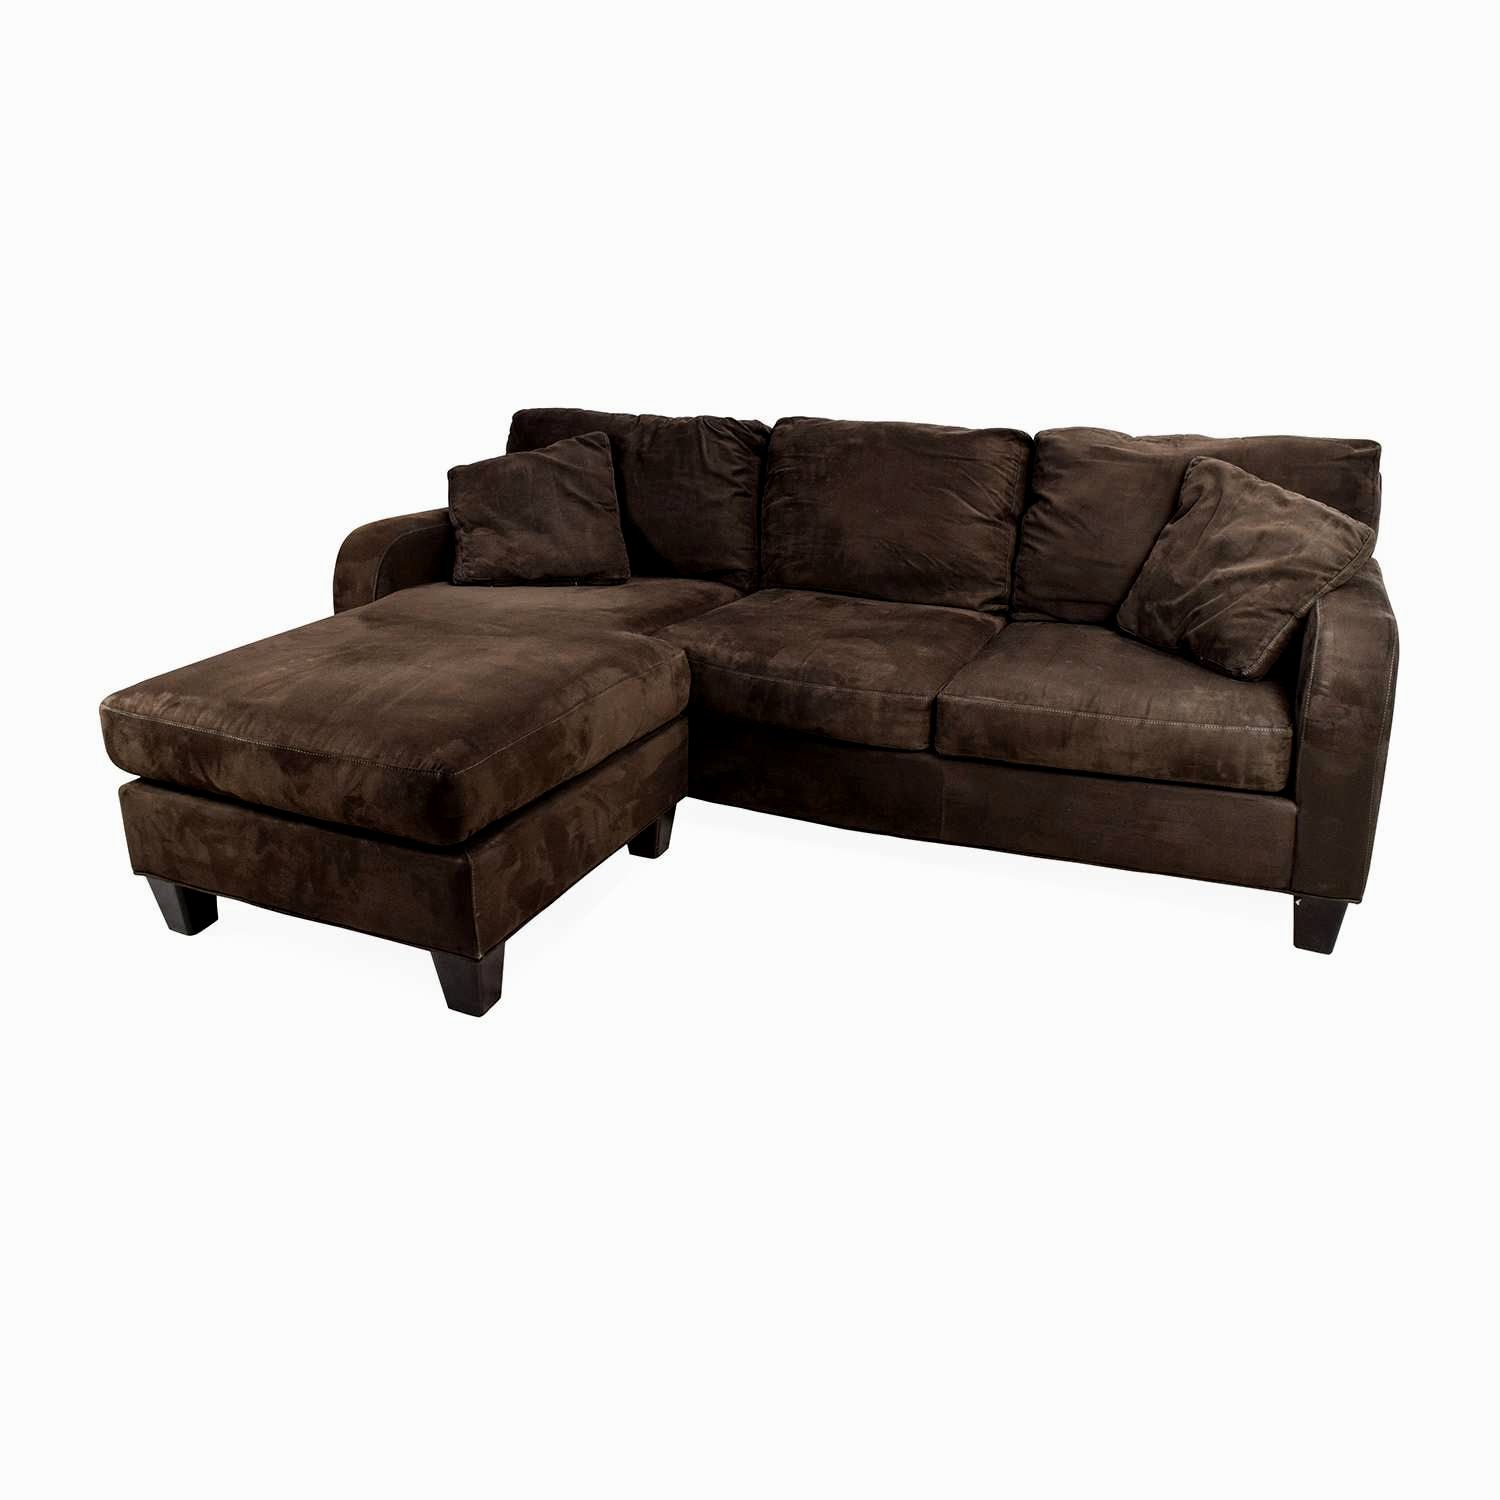 modern sleeper sofa reviews online-Stylish Sleeper sofa Reviews Ideas